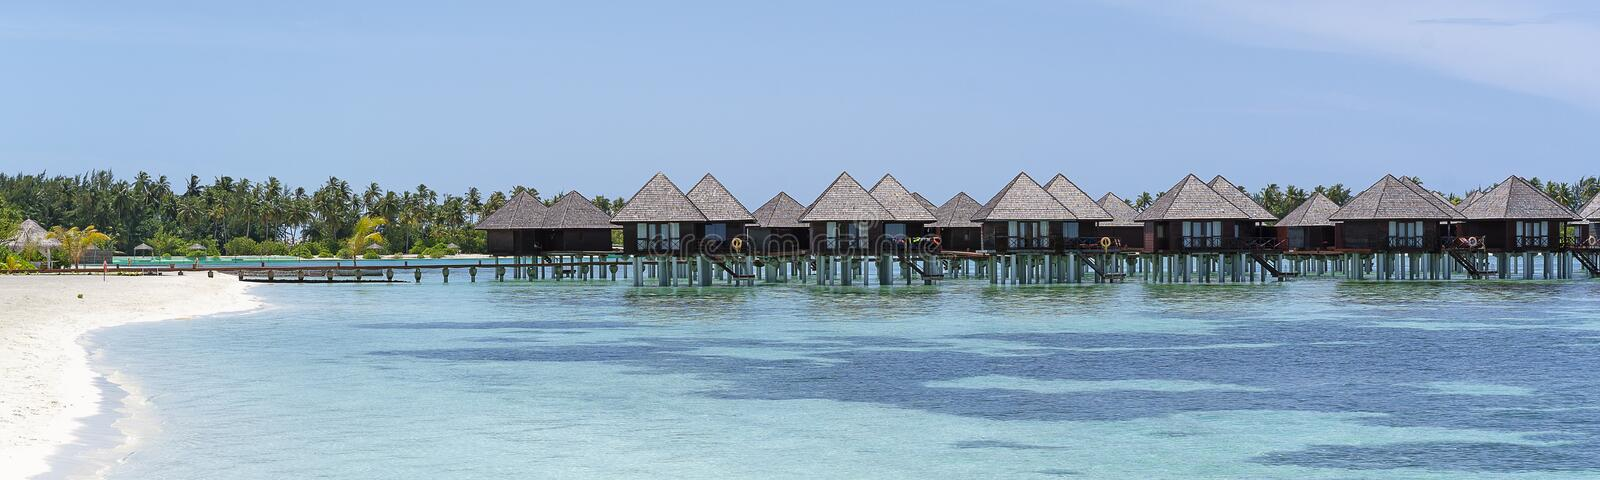 Water villas in Maldives in a sunny day, island paradise relax.  stock image